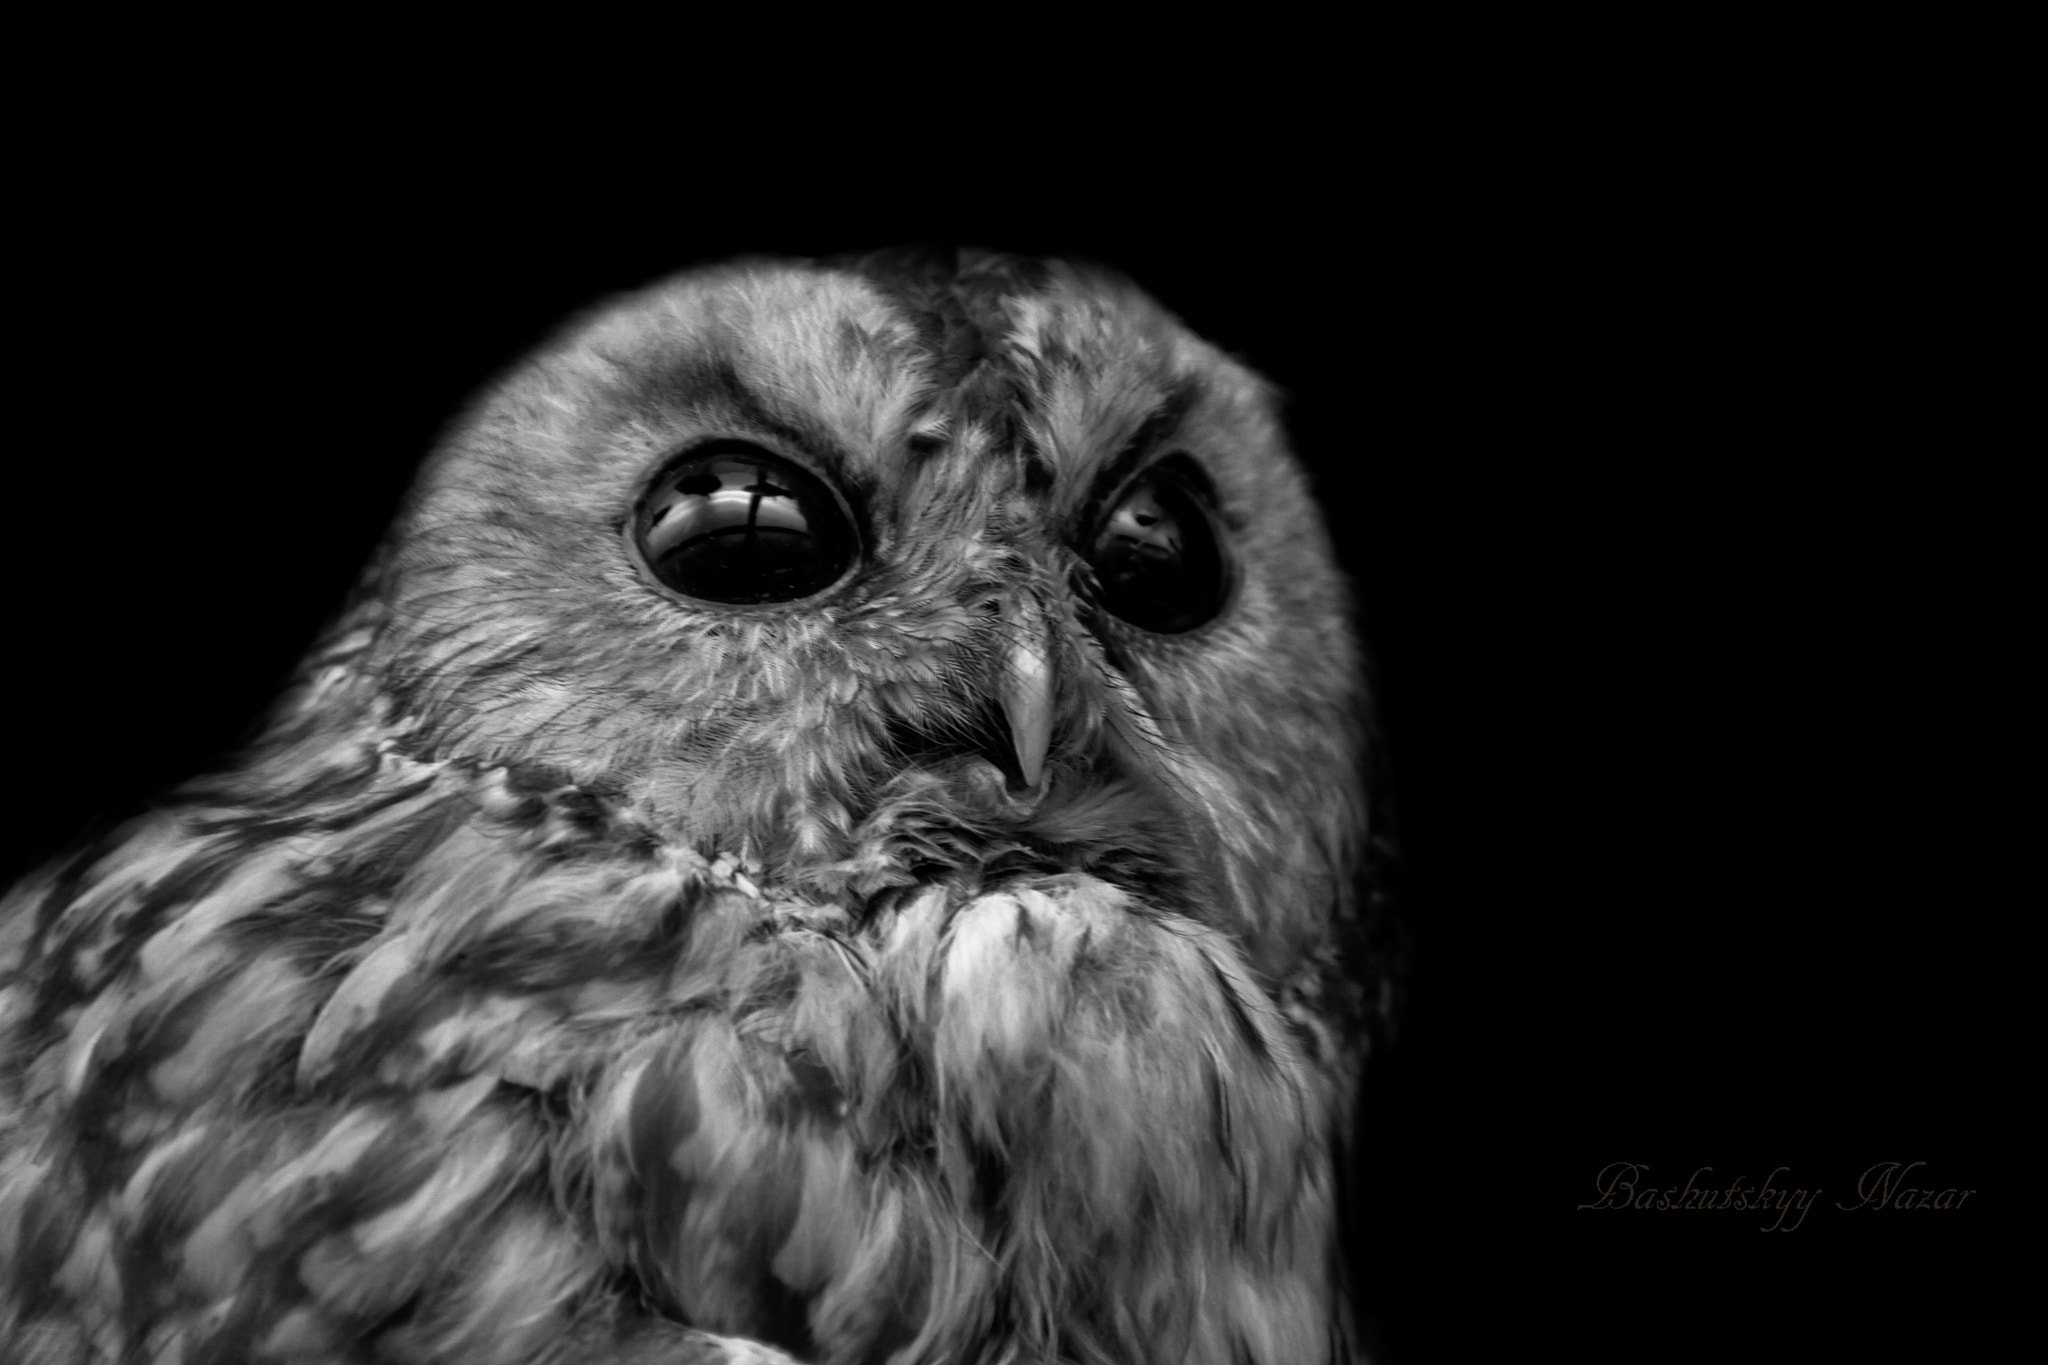 Photograph OWL by Nazar Bashutskyy on 500px